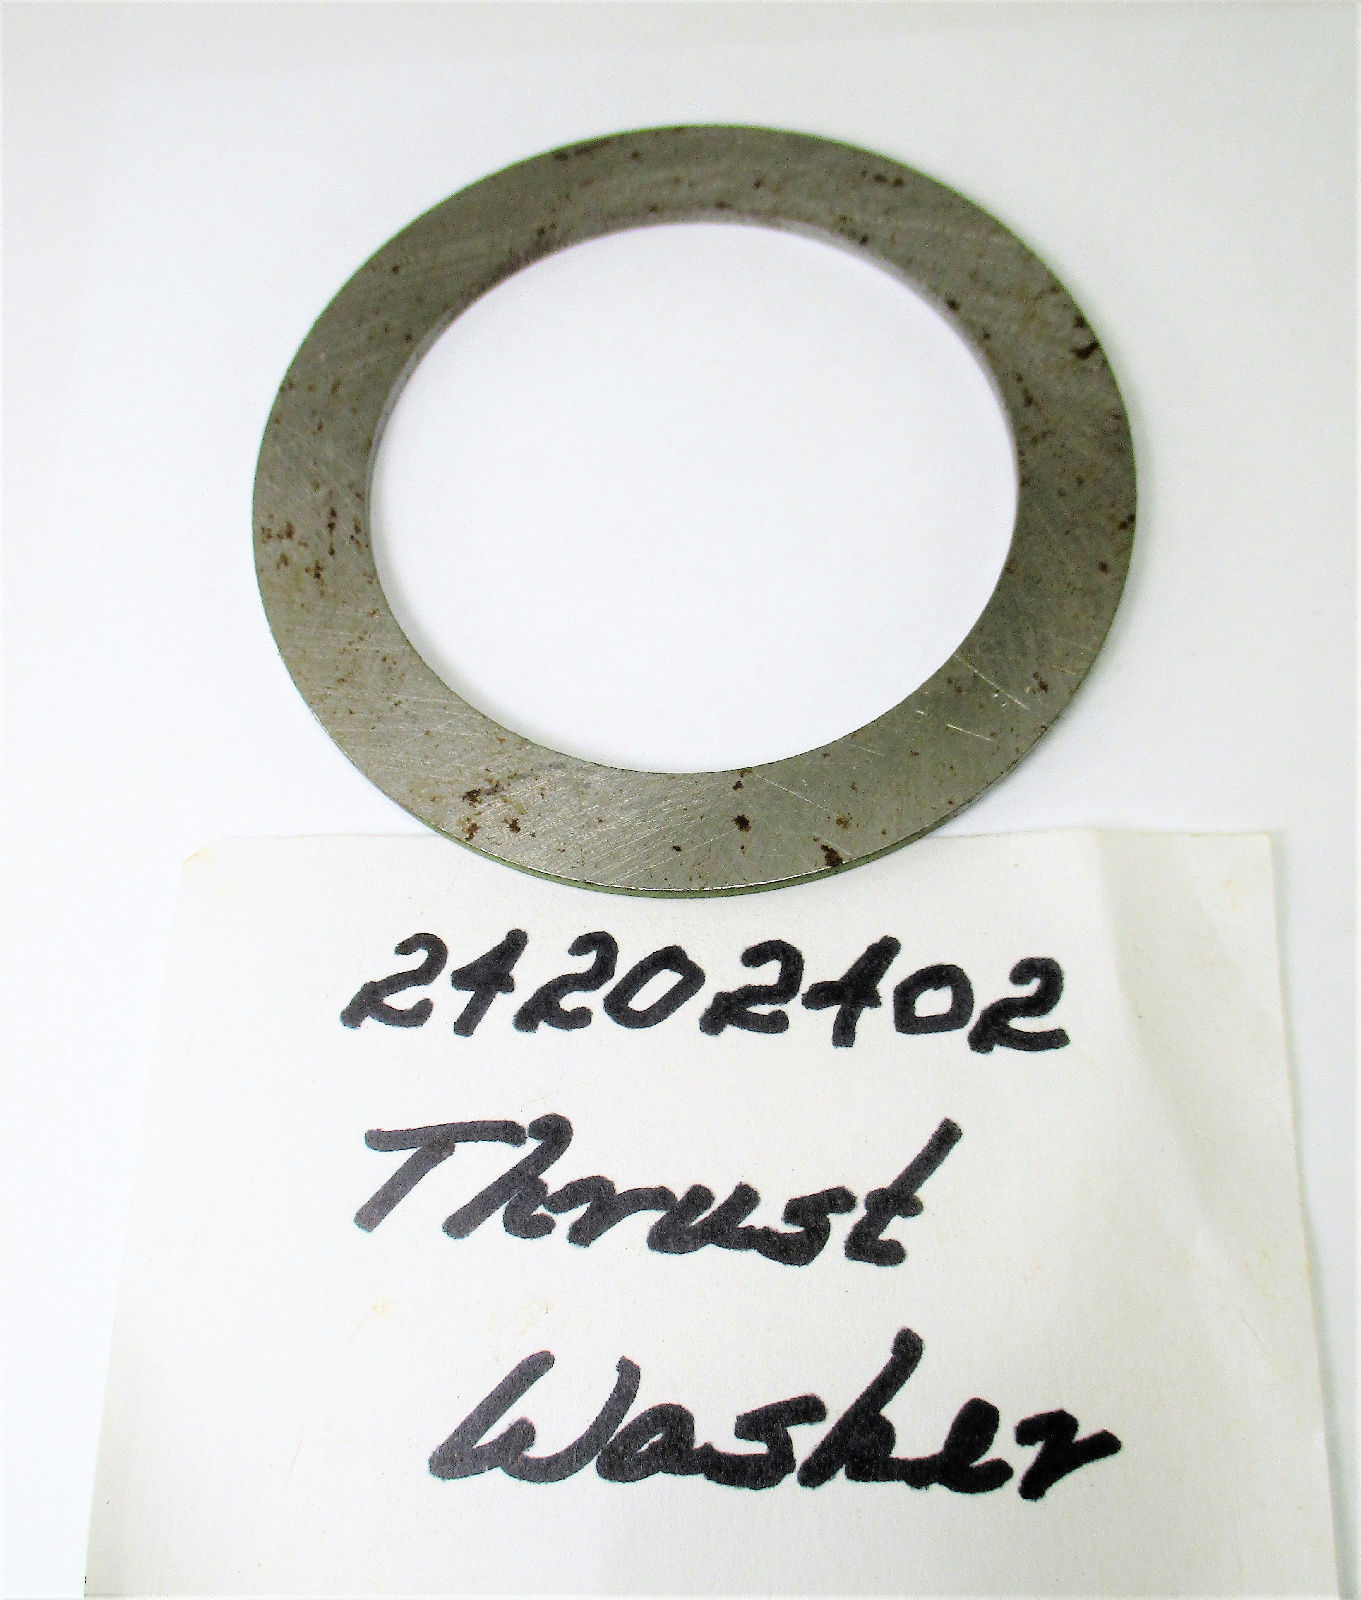 GM ACDelco Original 24202402 Thrust Washer General Motors Transmission New